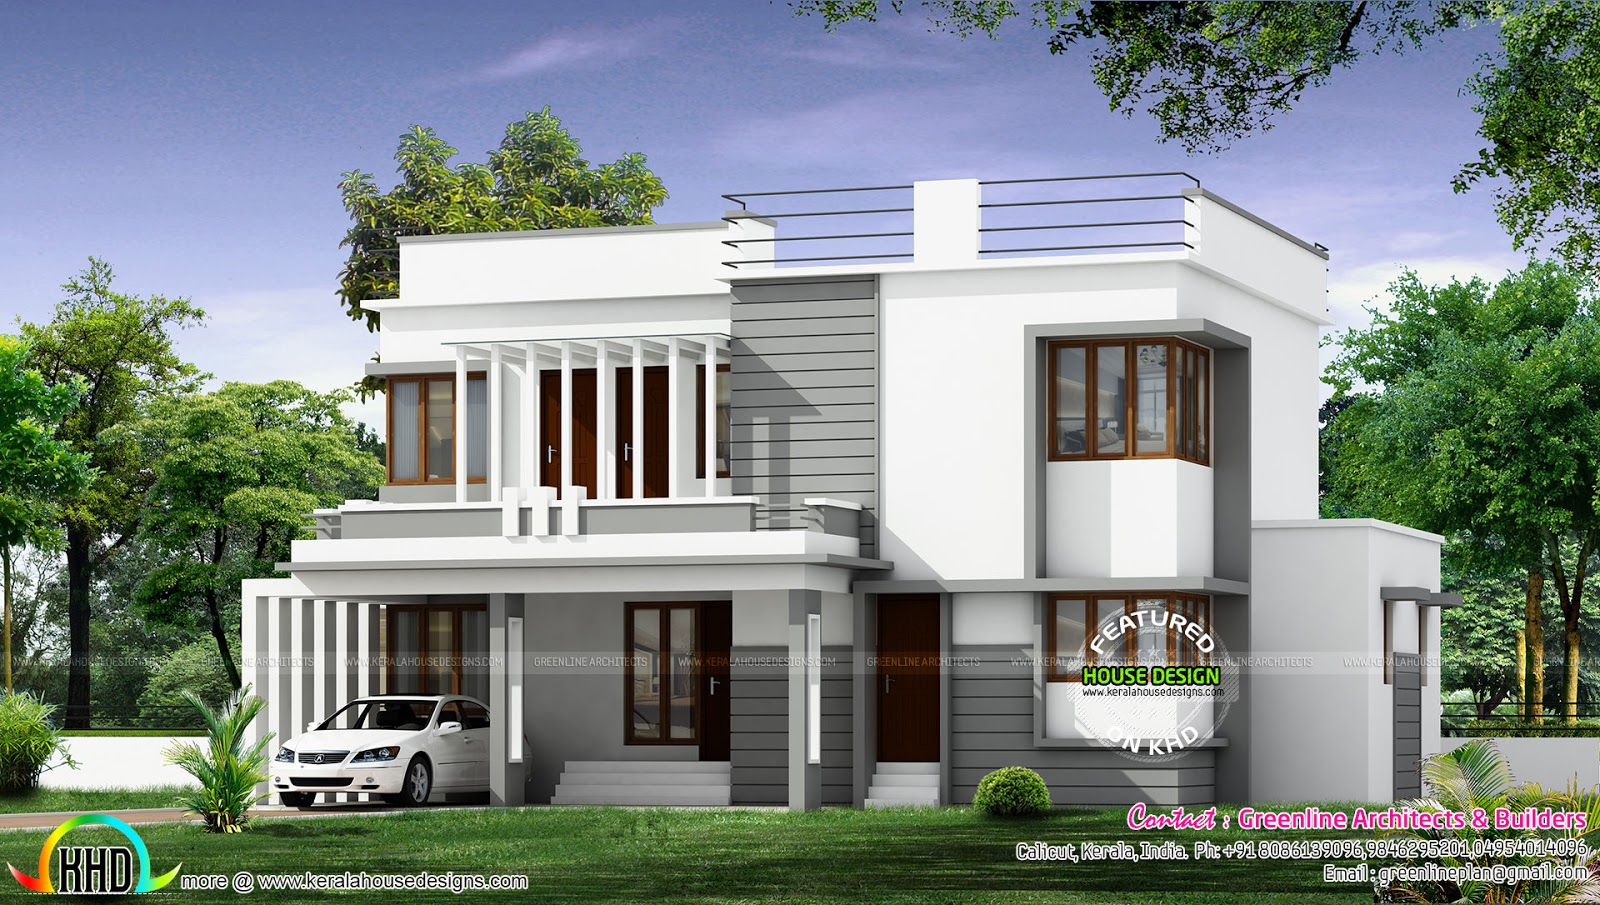 New modern house architecture kerala home design and for New home designs